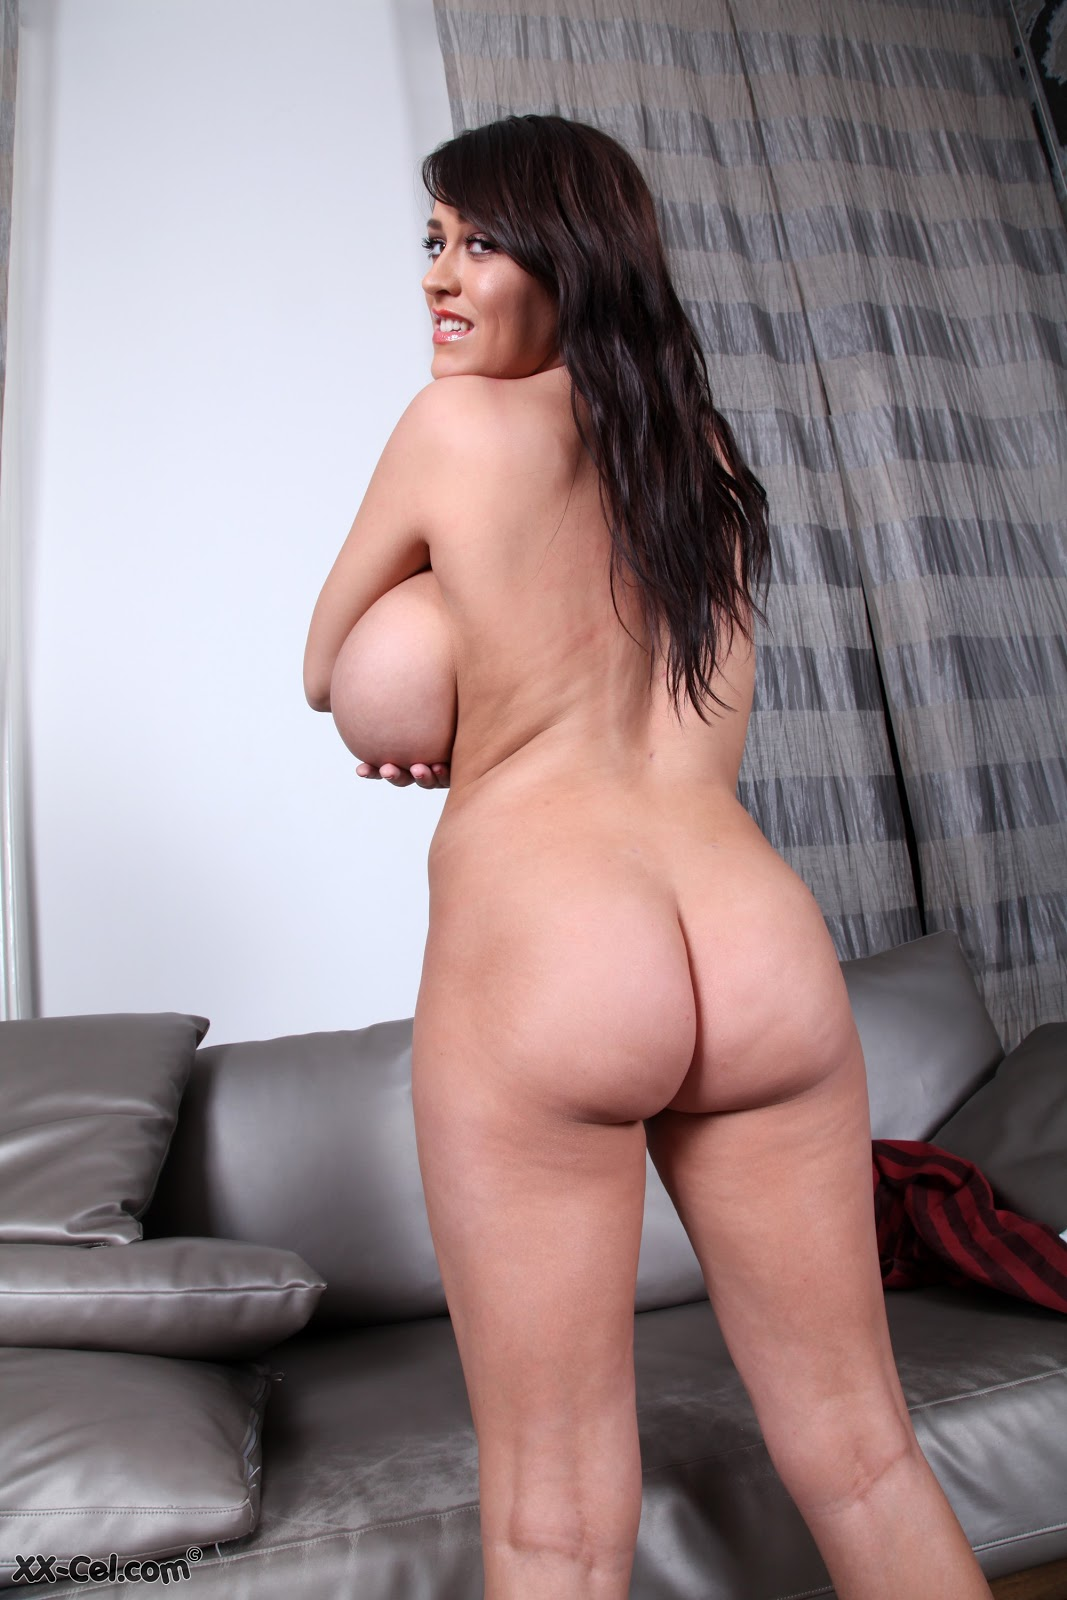 Leanne crow naked